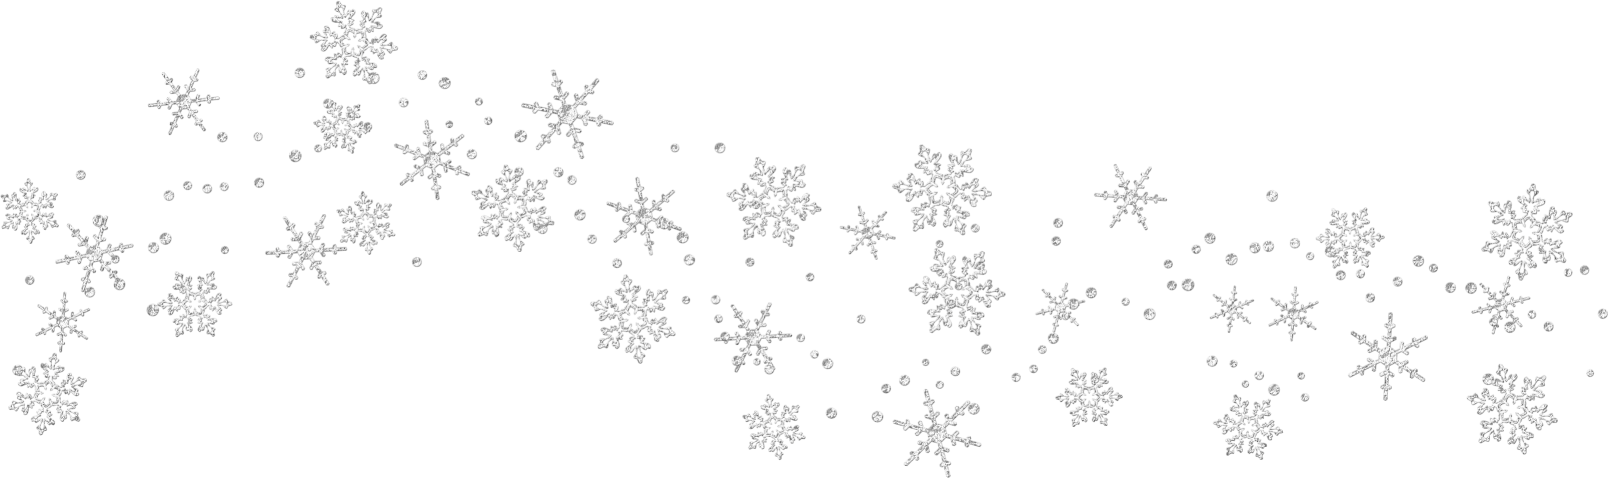 Garland clipart snowflakes.  collection of free